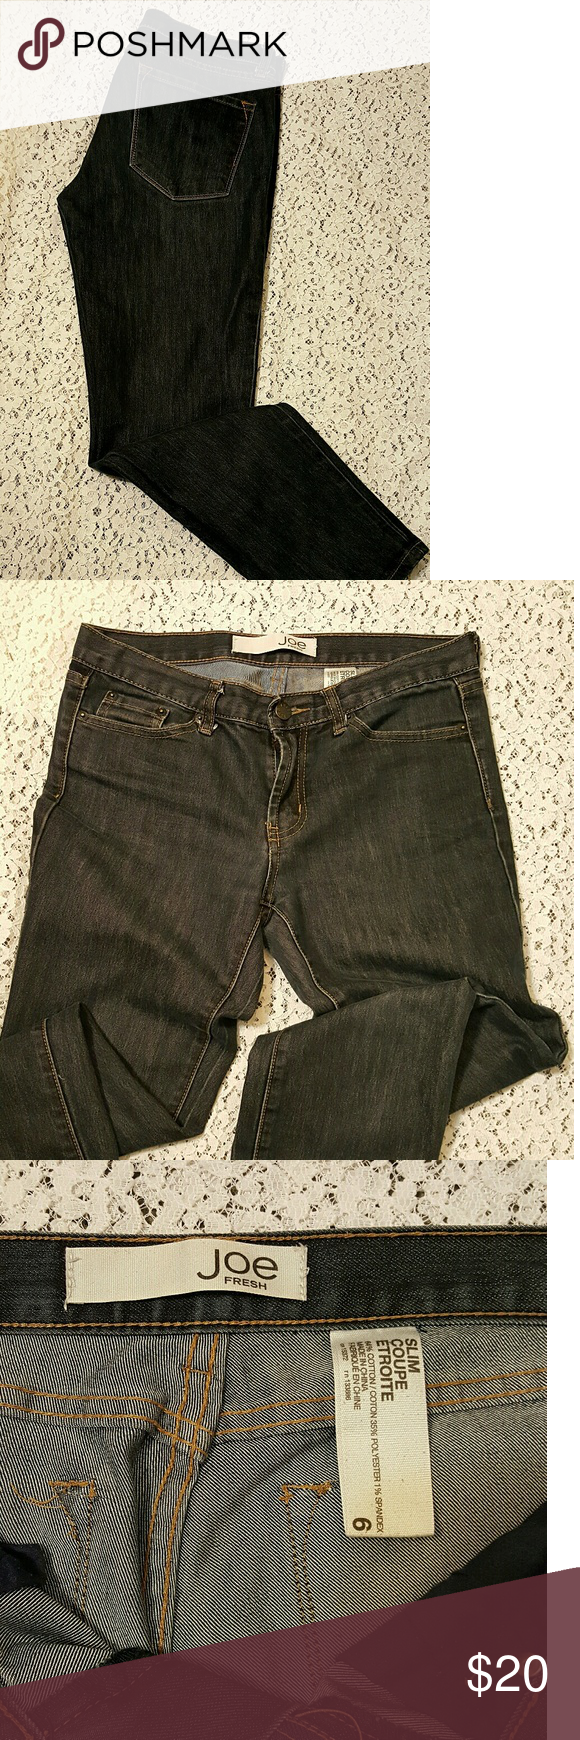 a5e2312475 Joe Fresh slim, Size 6, low rise, skinny leg Joe Fresh slim jeans, Size 6,  low rise, skinny leg, a nice dark Indigo Blue wash. They appear to be in  like new ...